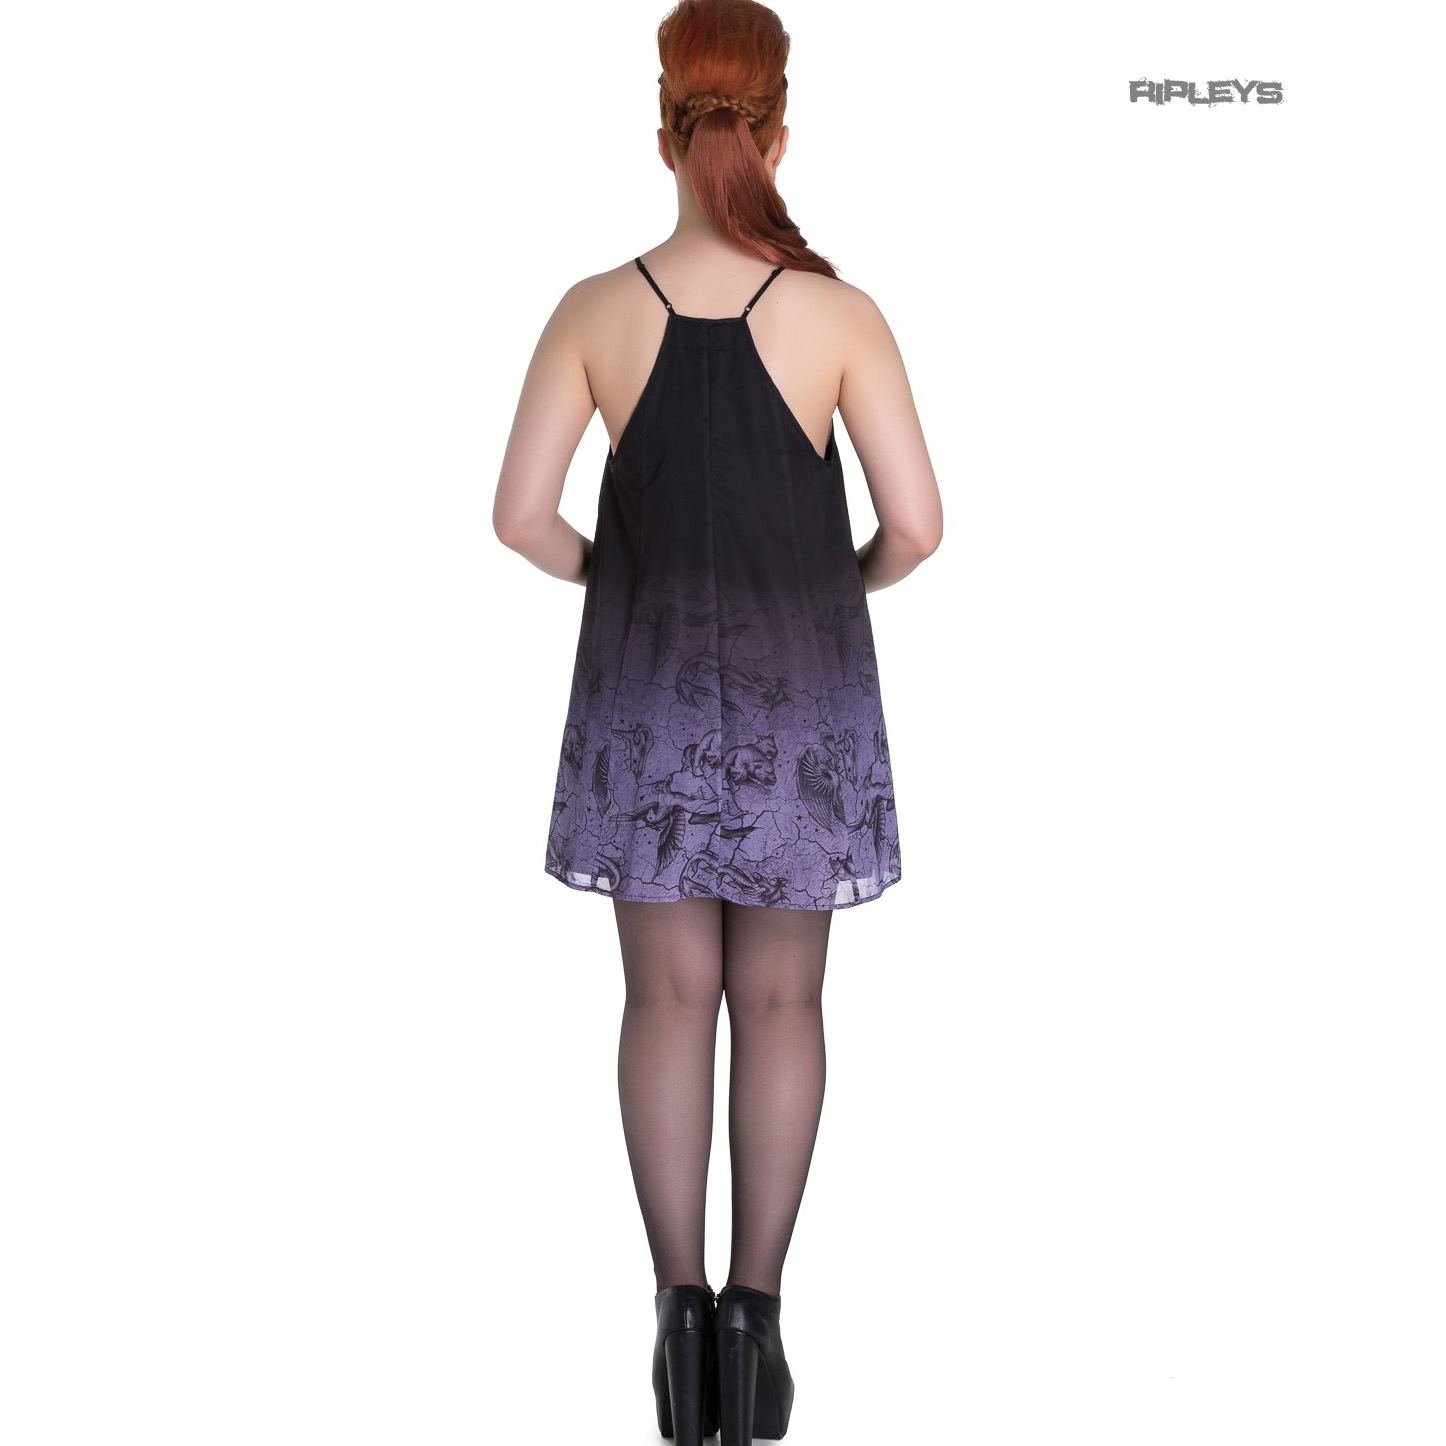 Hell-Bunny-Spin-Doctor-Goth-Lace-Up-Mini-Dress-EVADINE-Purple-Black-All-Sizes thumbnail 8